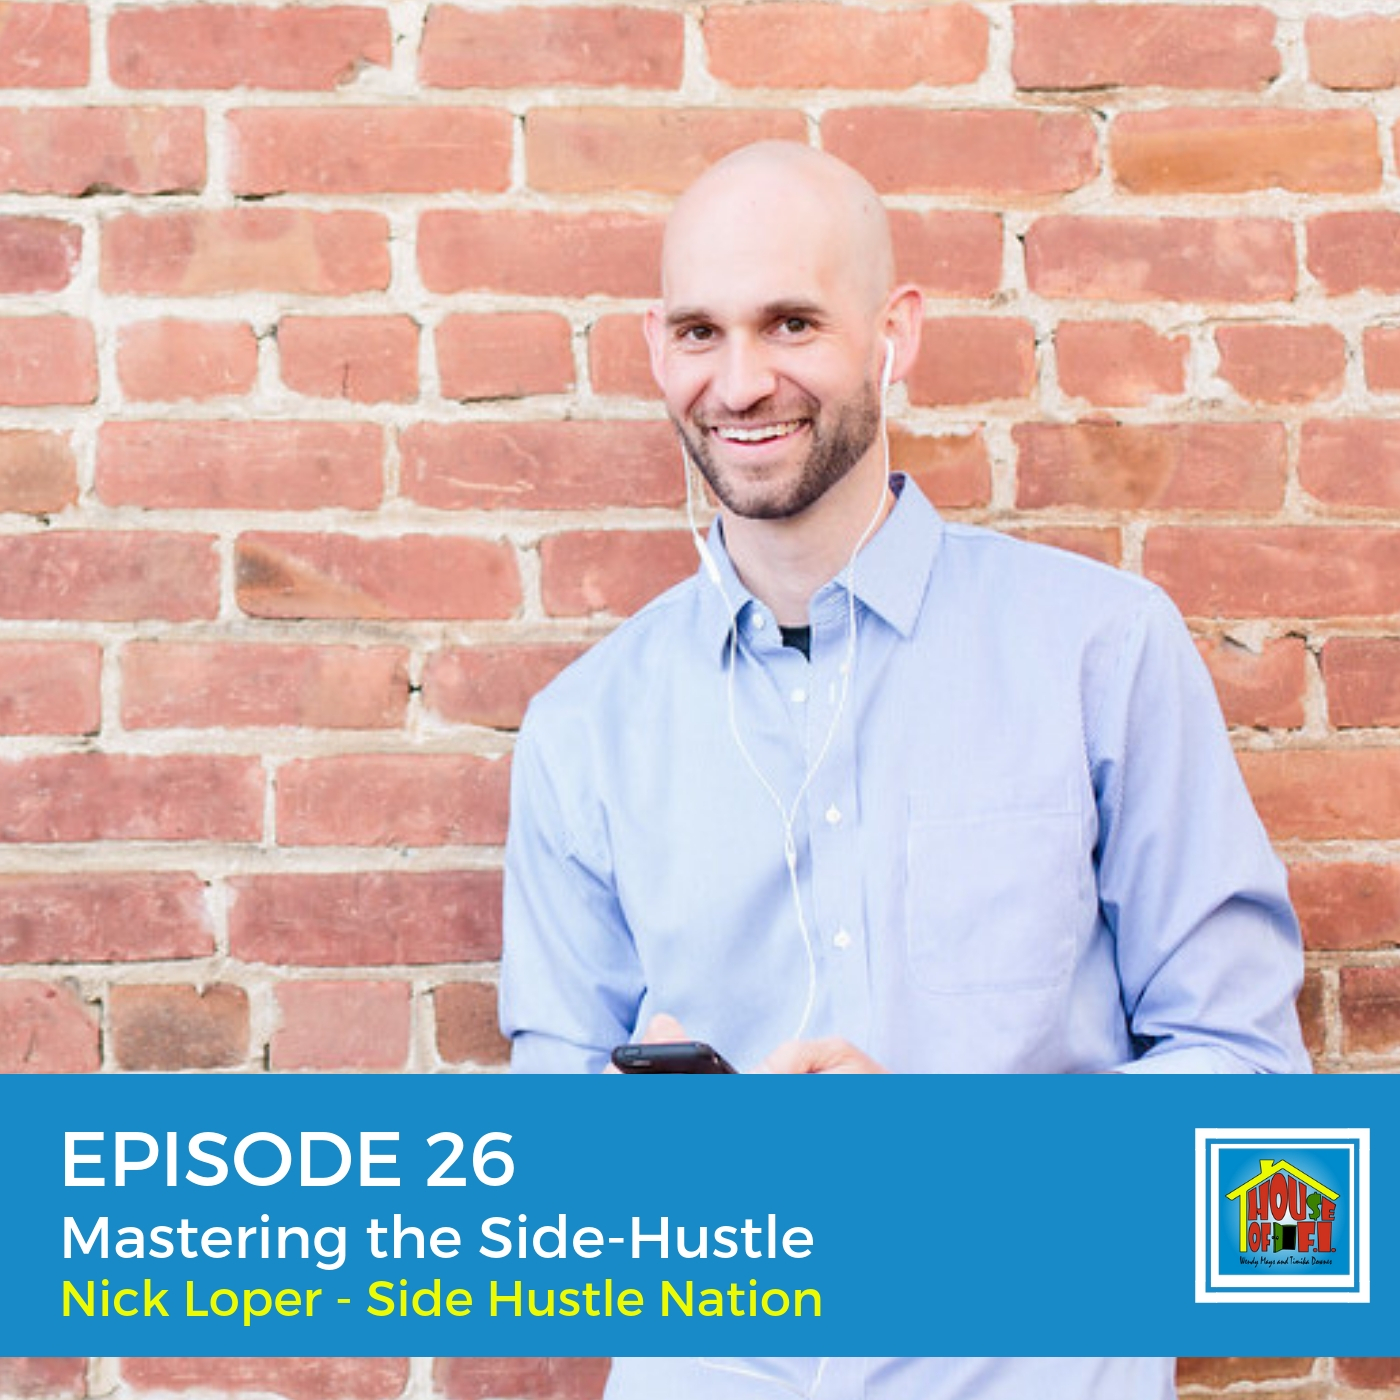 Artwork for Episode 26 Mastering the Side-Hustle, From Side Hustle to Full-Time Income